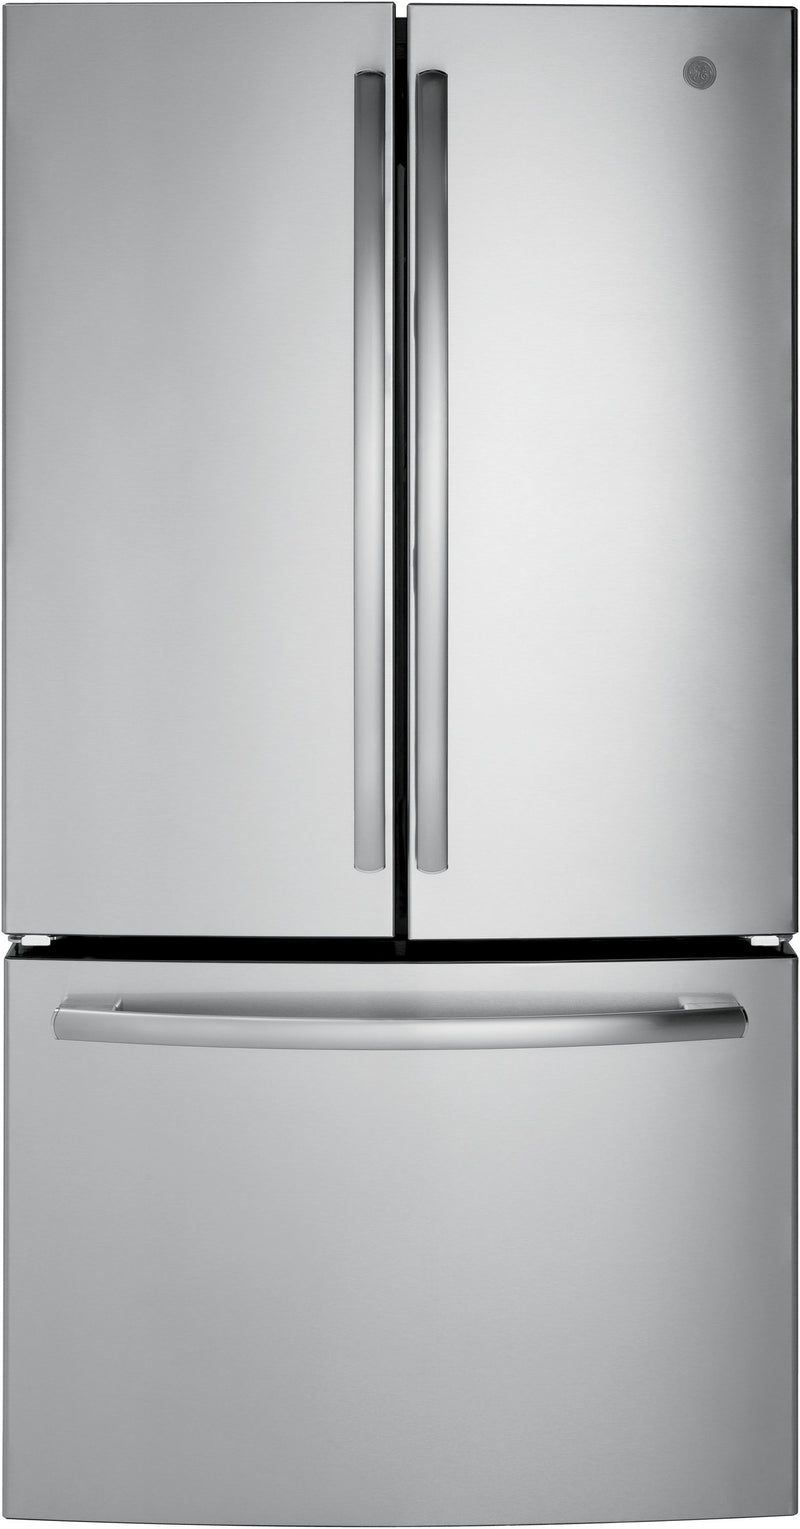 GE Stainless Steel French Door Refrigerator (26.7 Cu. Ft) - GNE27ESMSS